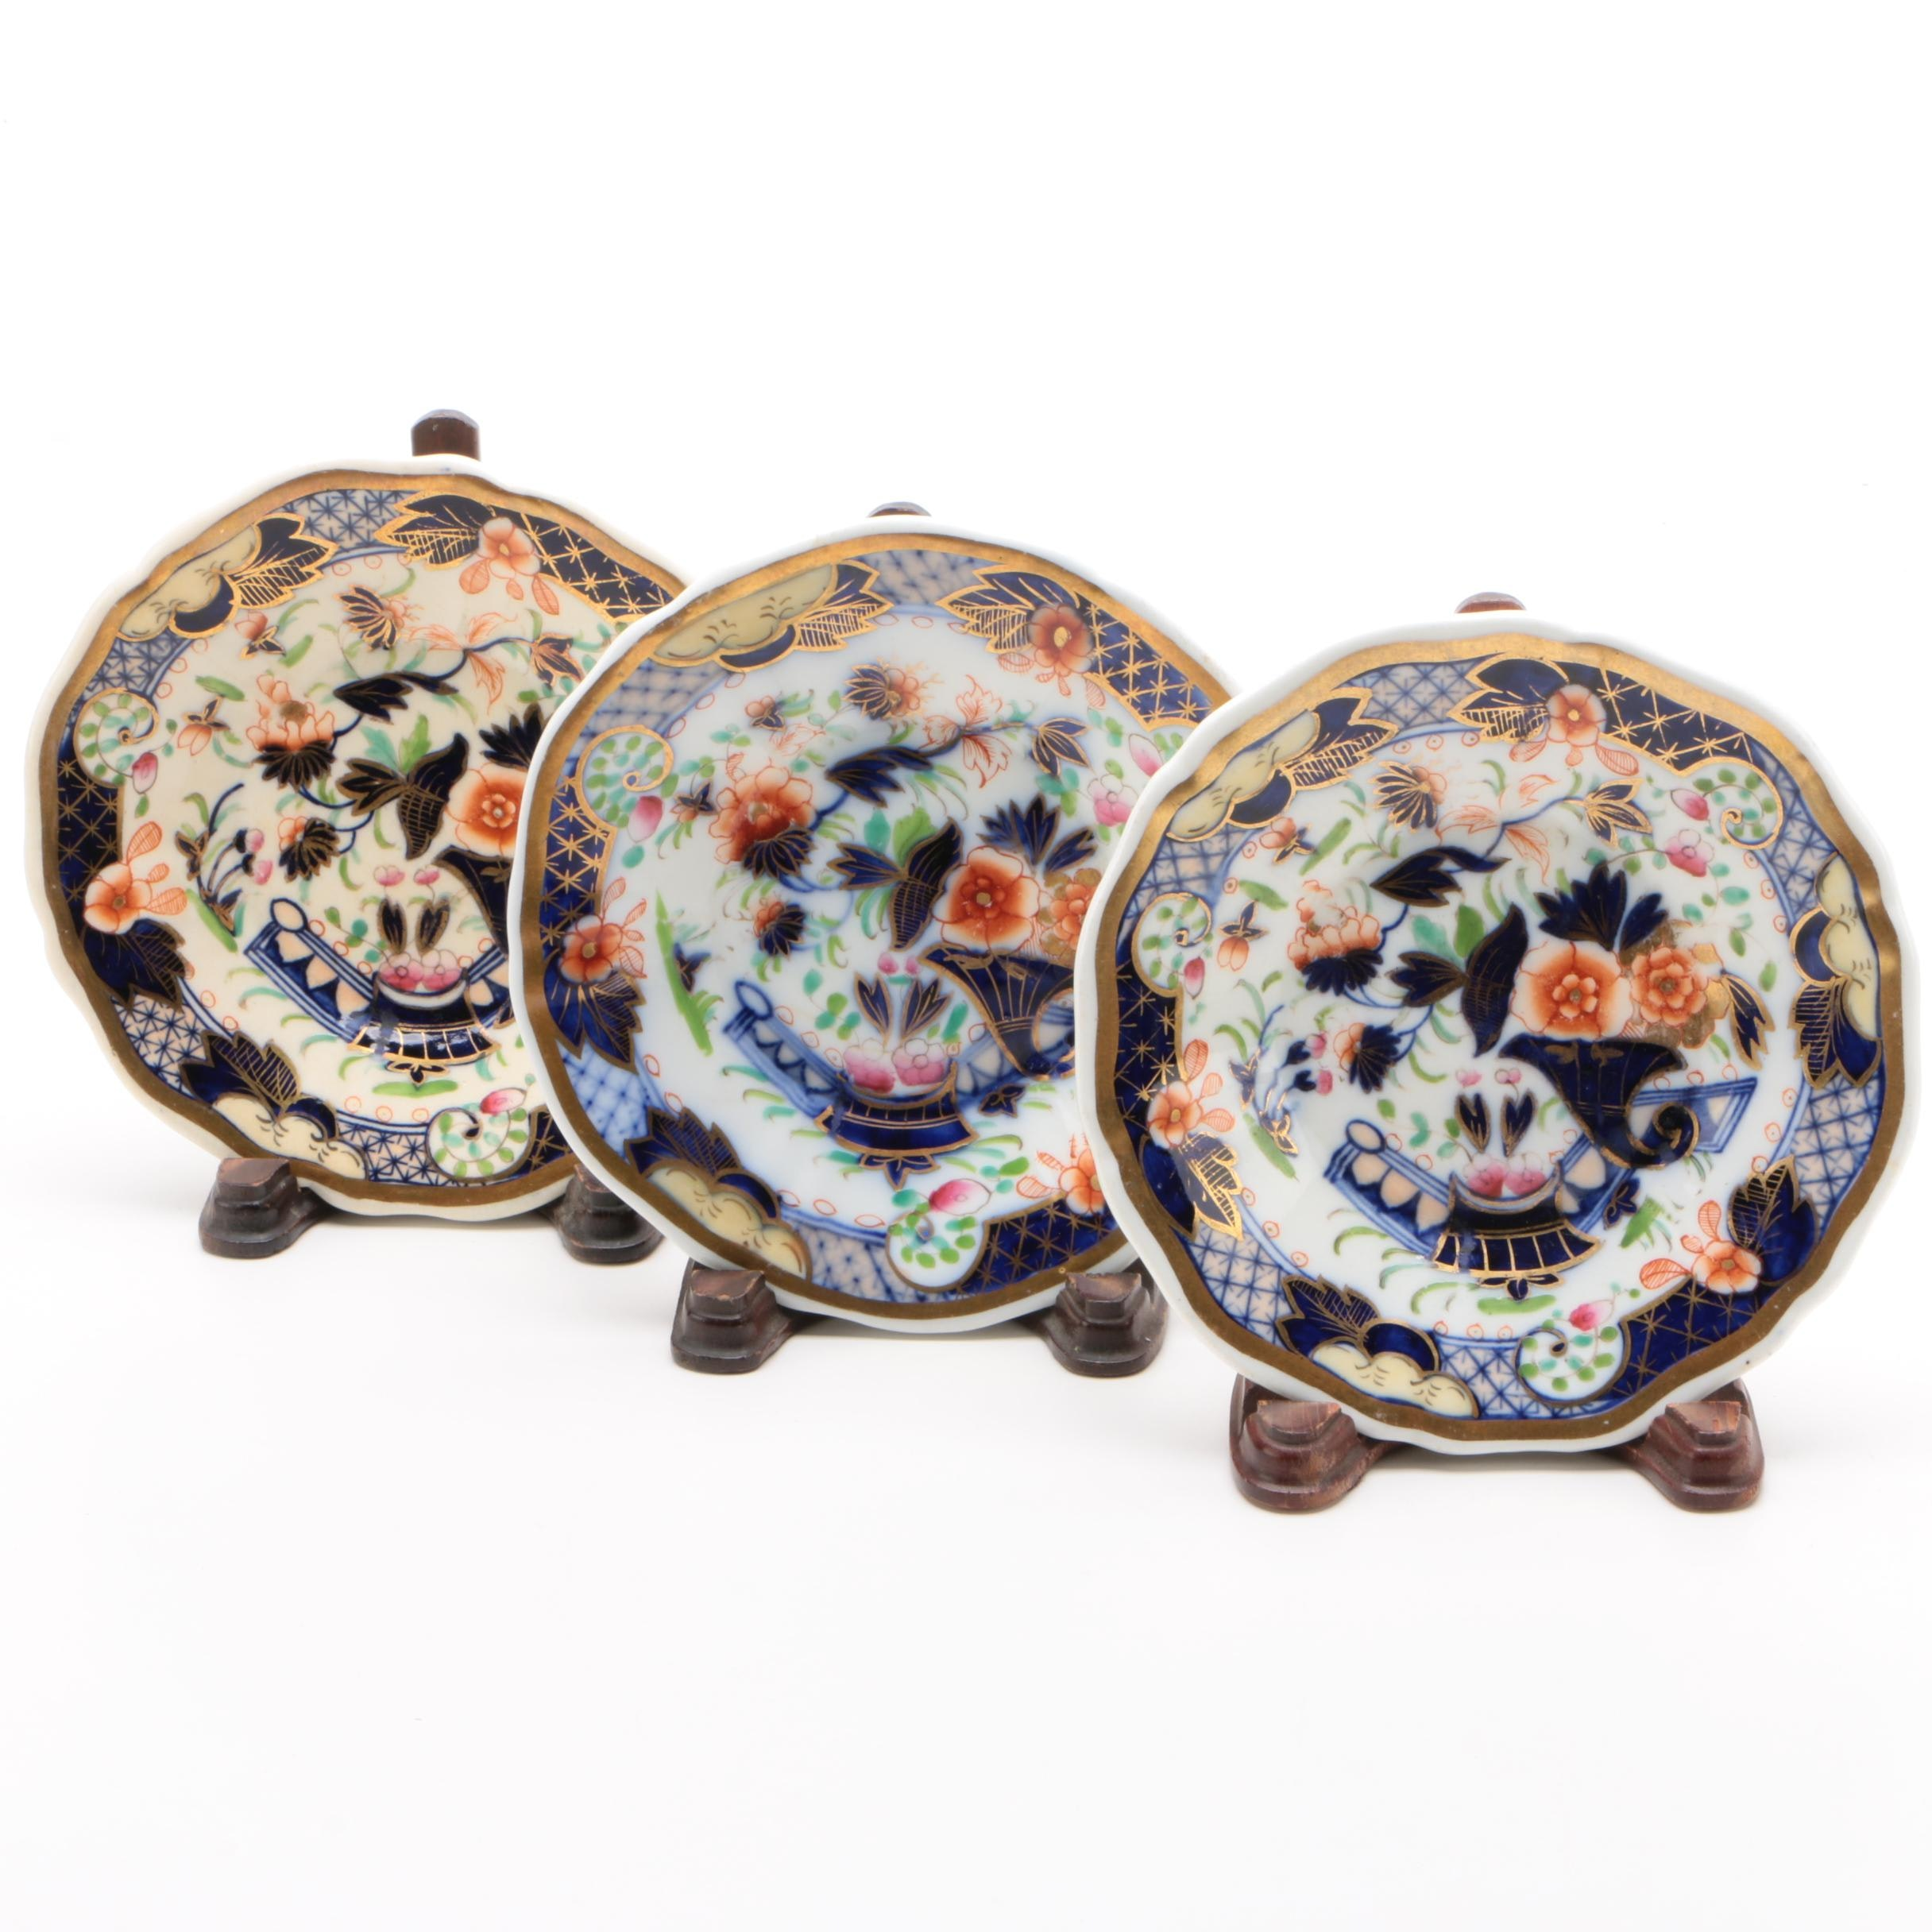 English Imari Style Porcelain Saucers with Stands, 19th Century